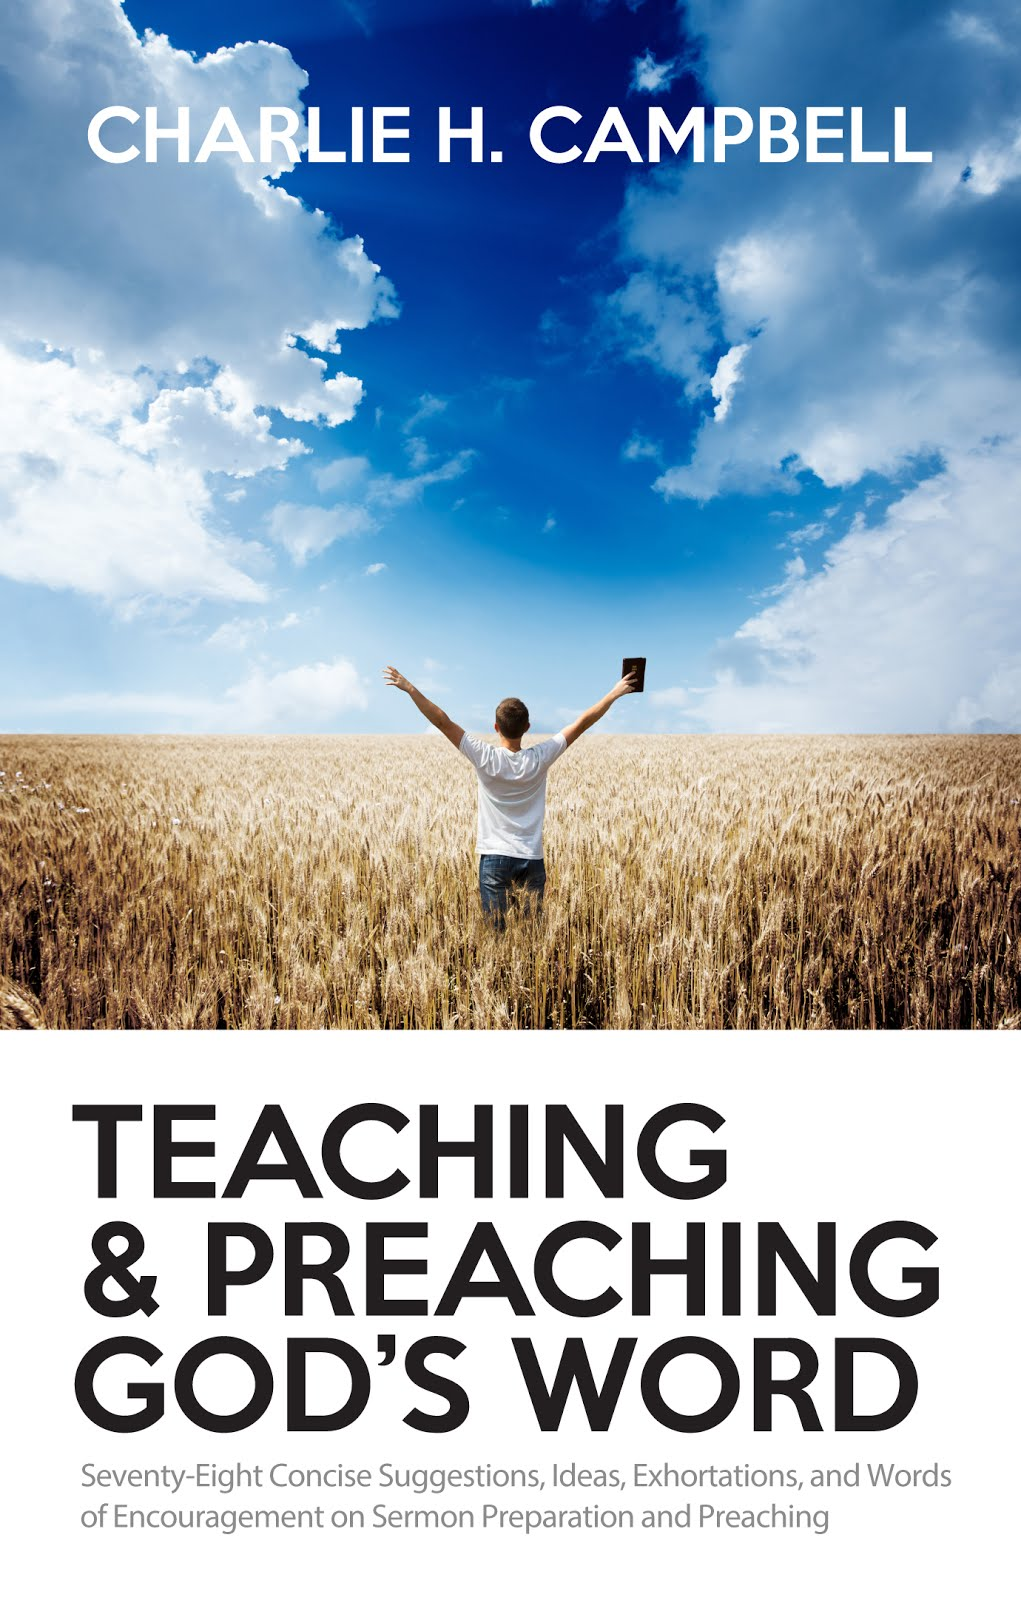 Teaching & Preaching God's Word